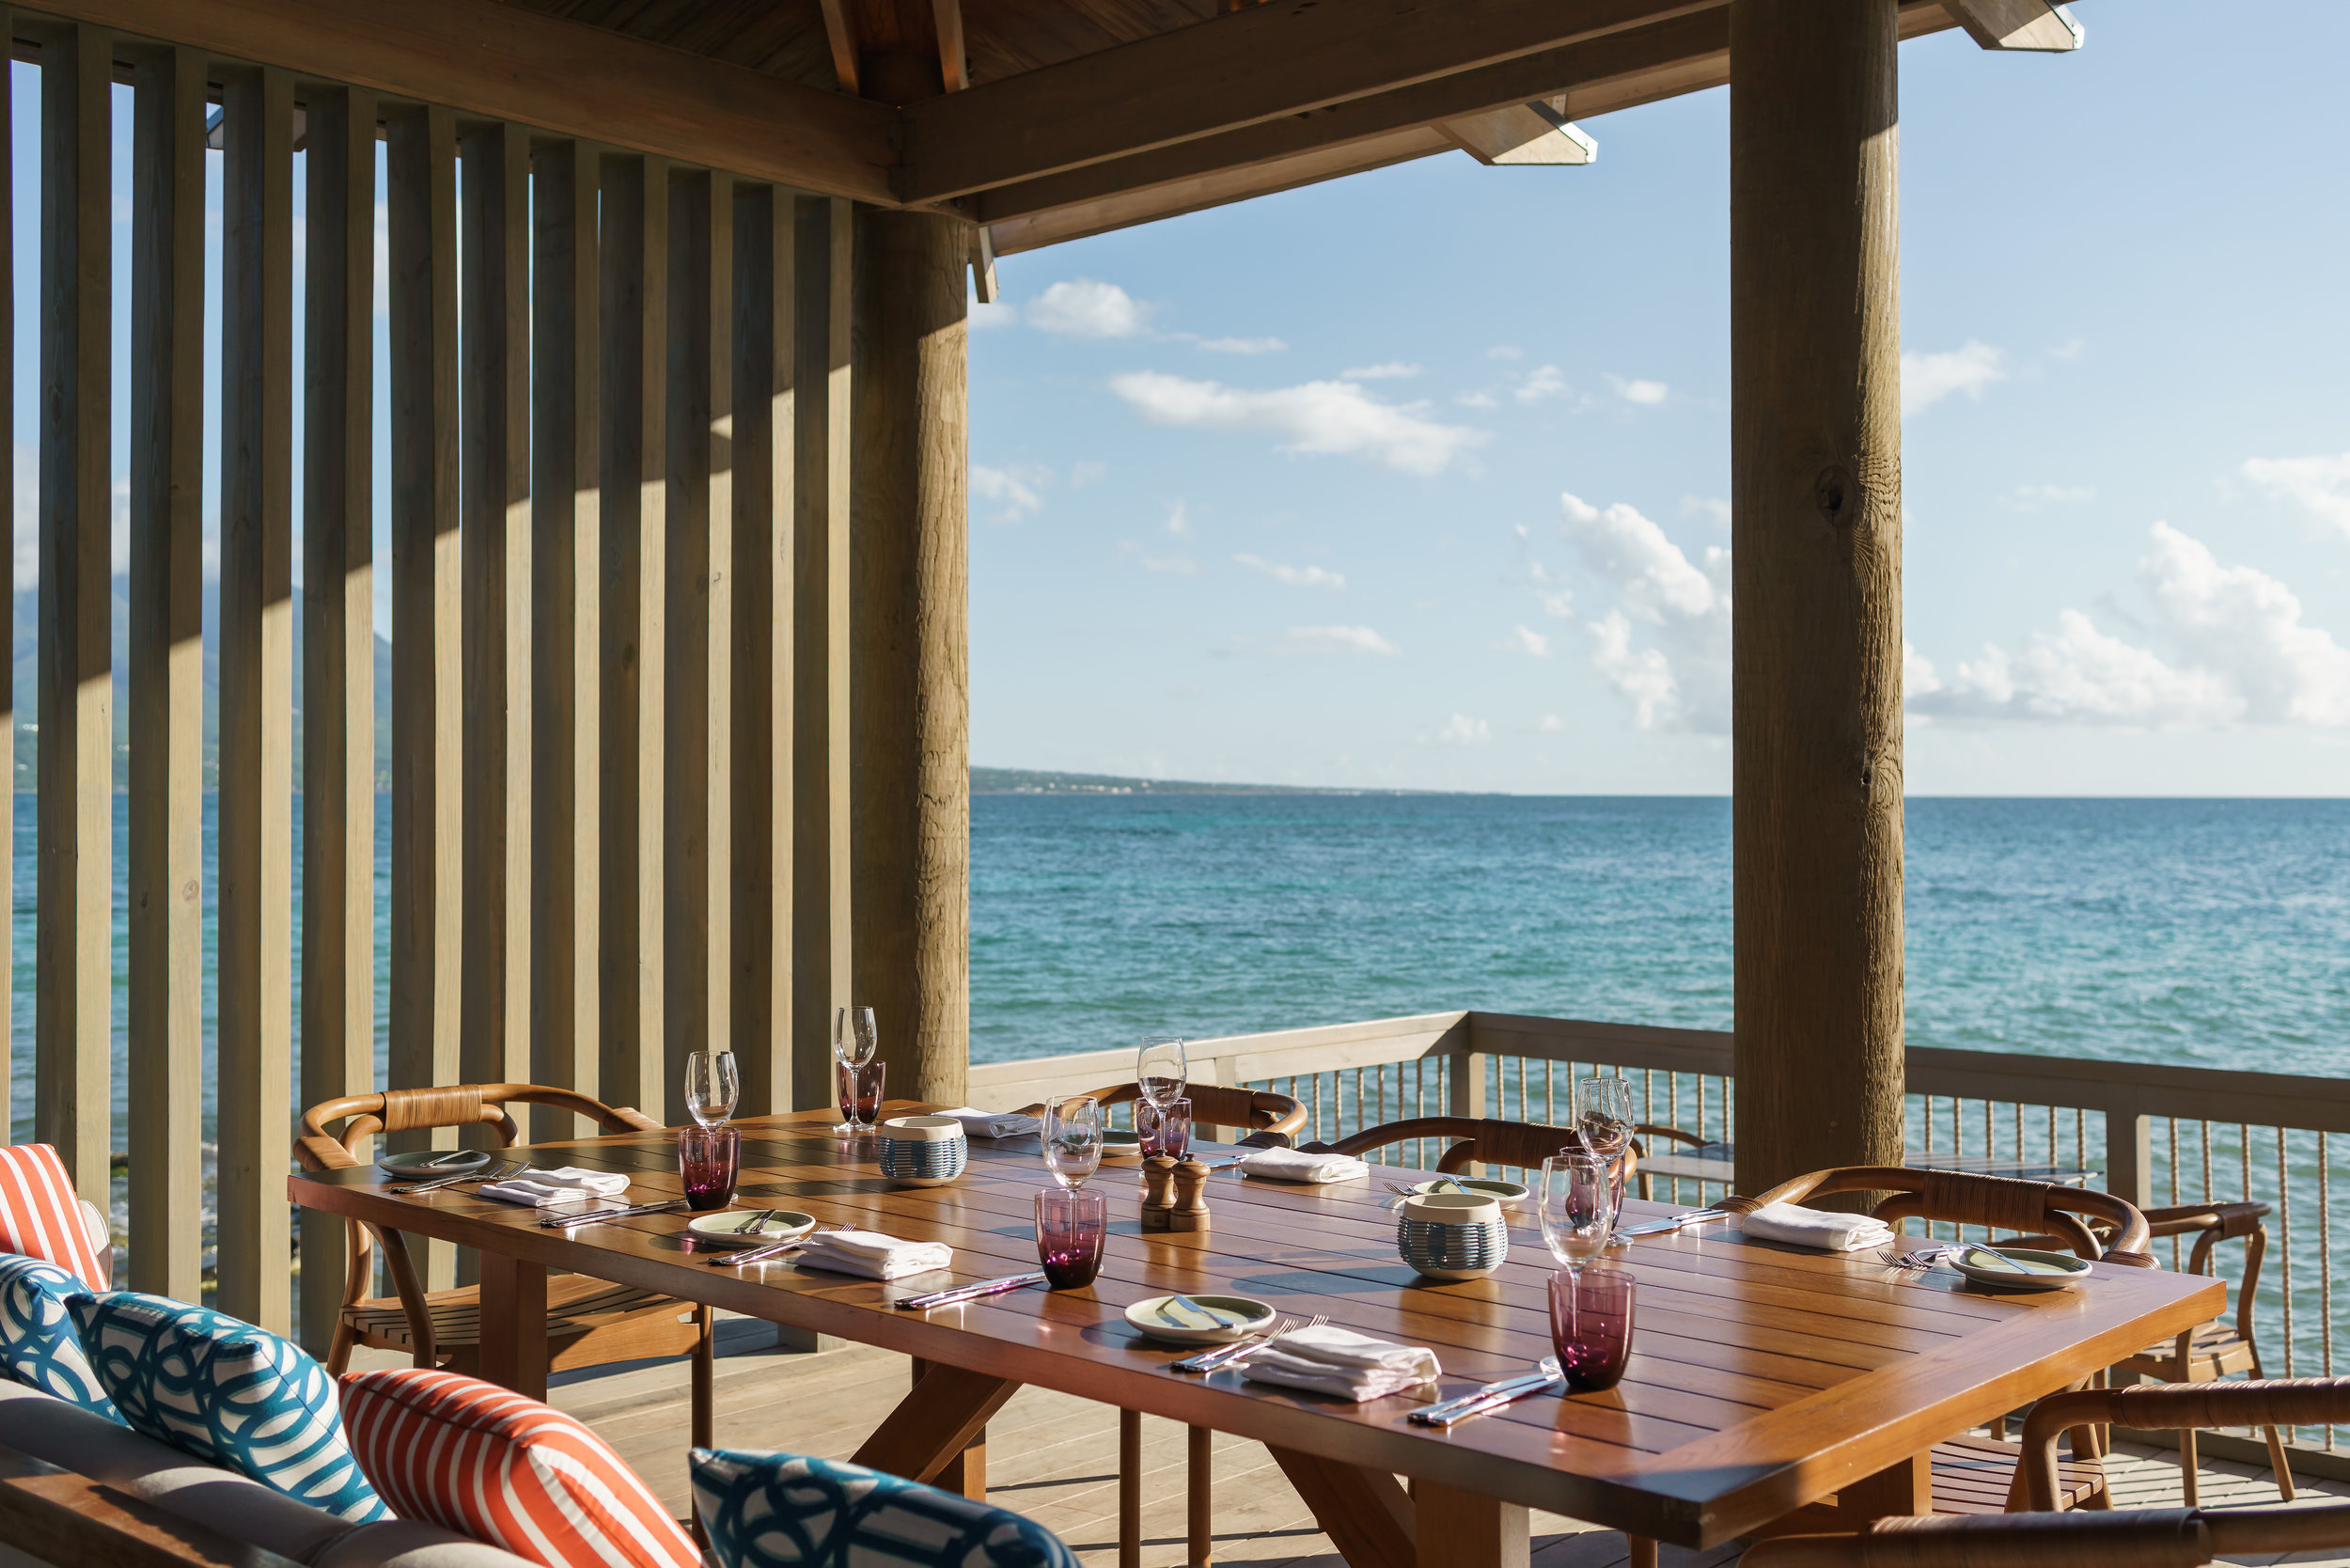 Park-Hyatt-St-Kitts-Fishermans-Village-Dining.jpg